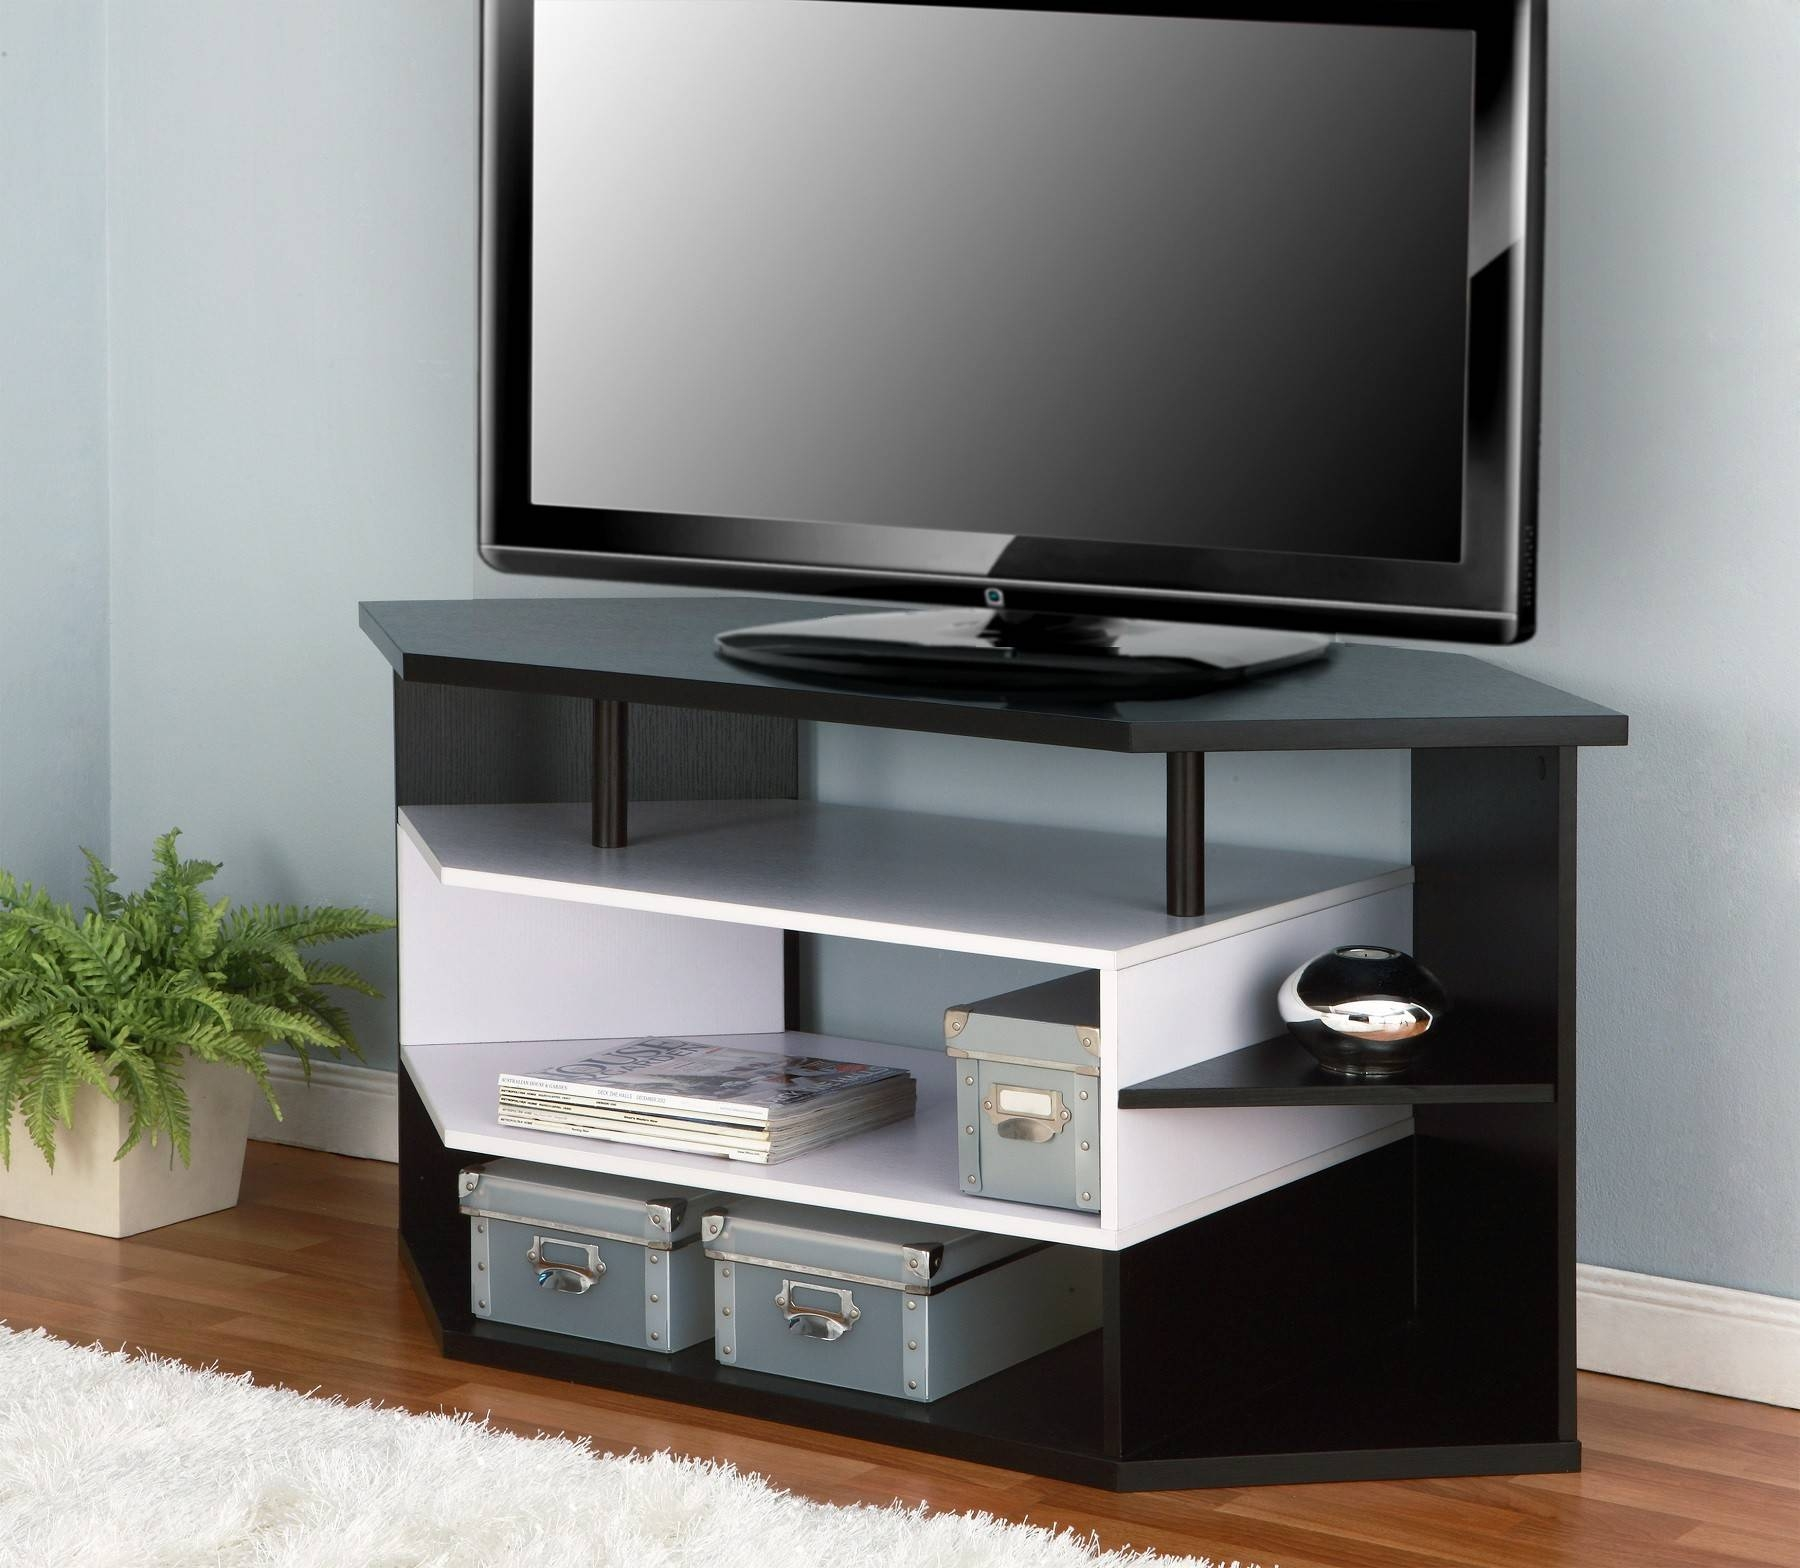 Furniture Of America Rixton Black And White 47-Inch Contemporary regarding Contemporary Corner Tv Stands (Image 6 of 15)